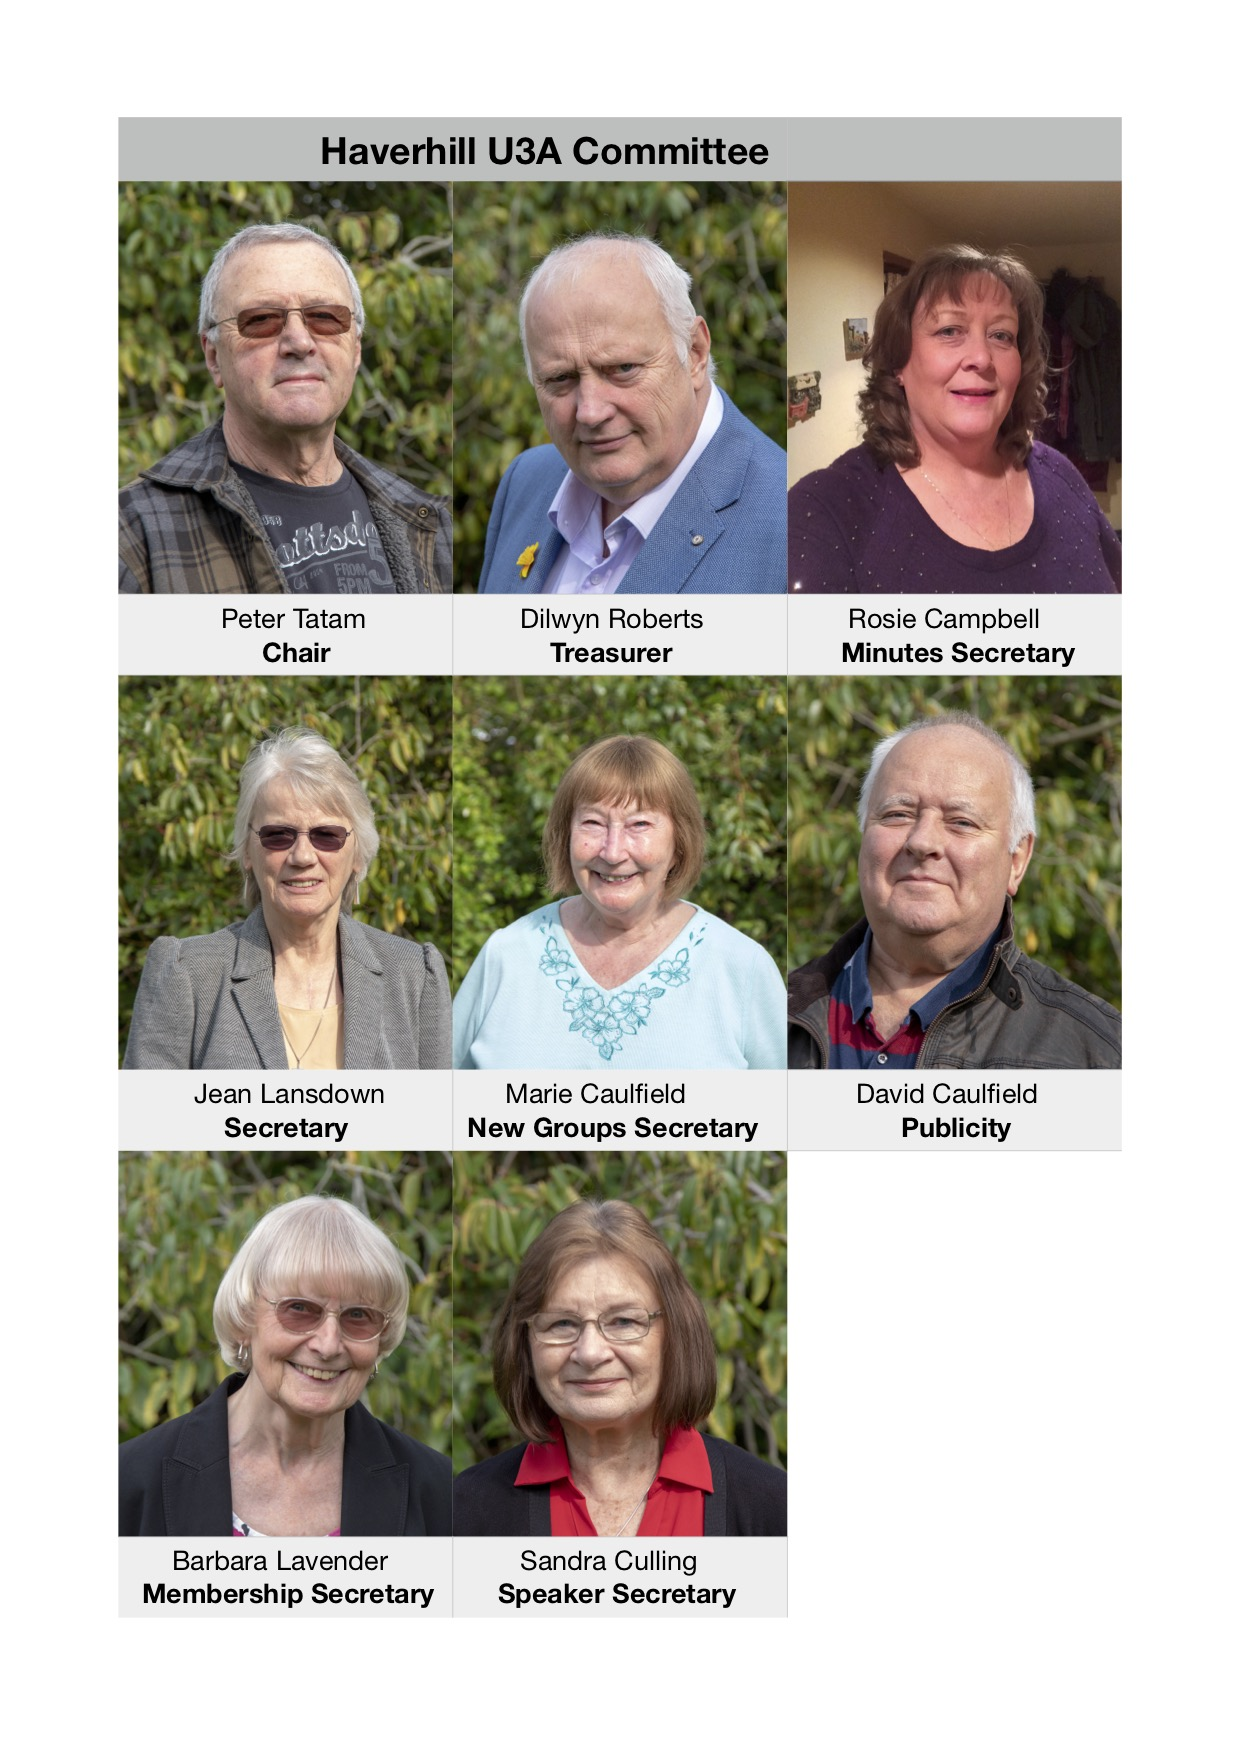 Do you recognise Haverhill U3A Committee